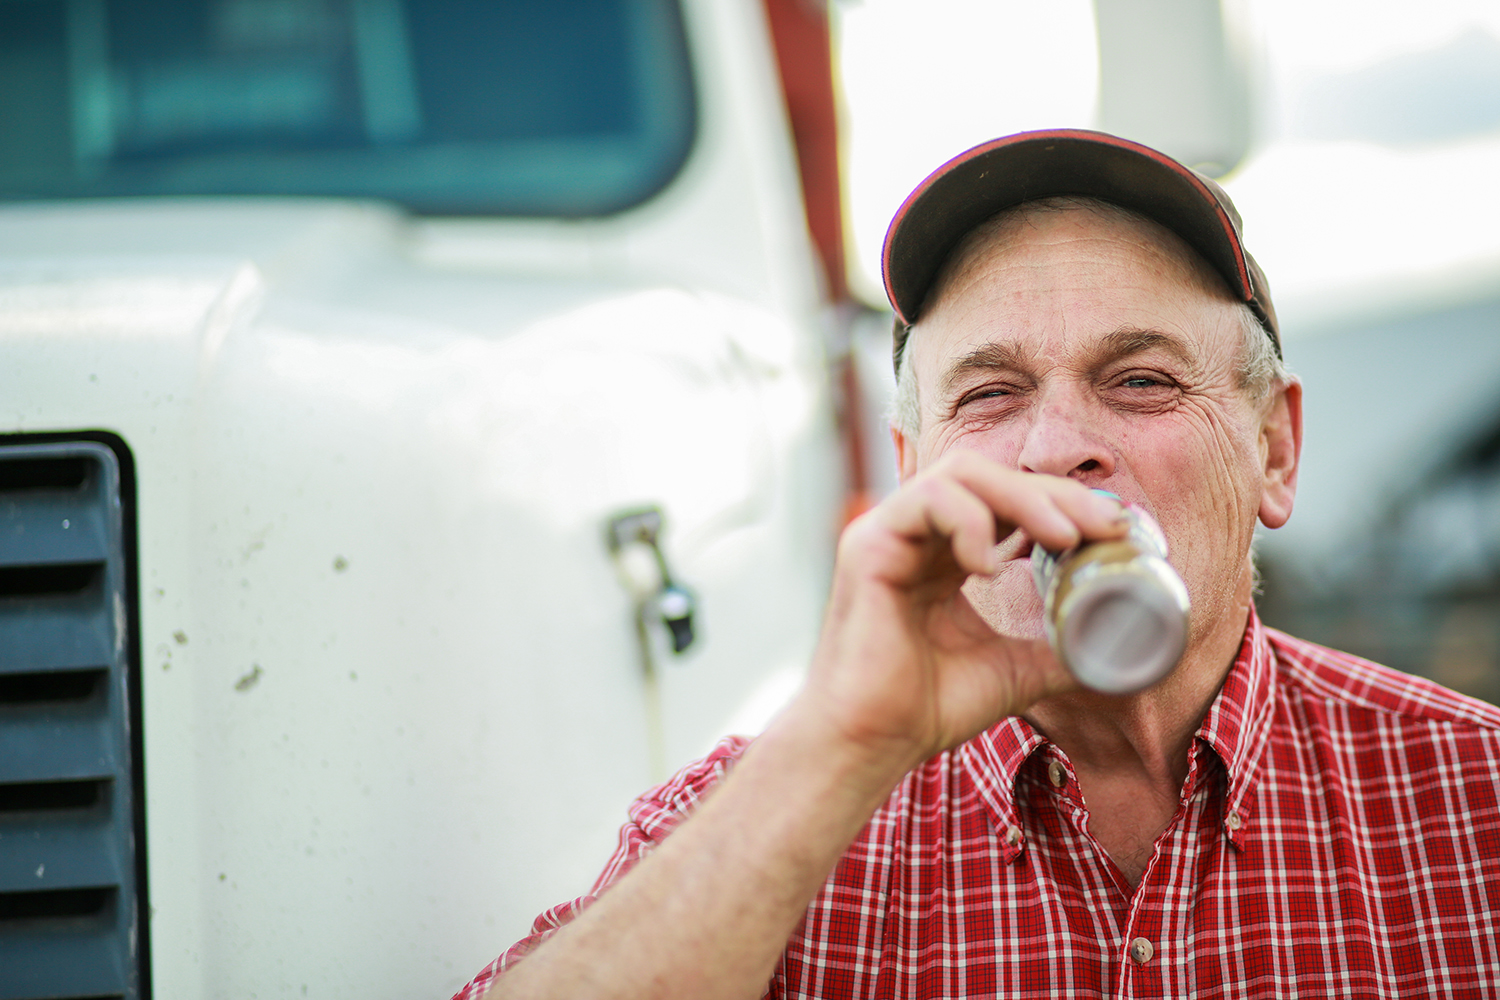 Man drinking chocolate milk in front of a truck